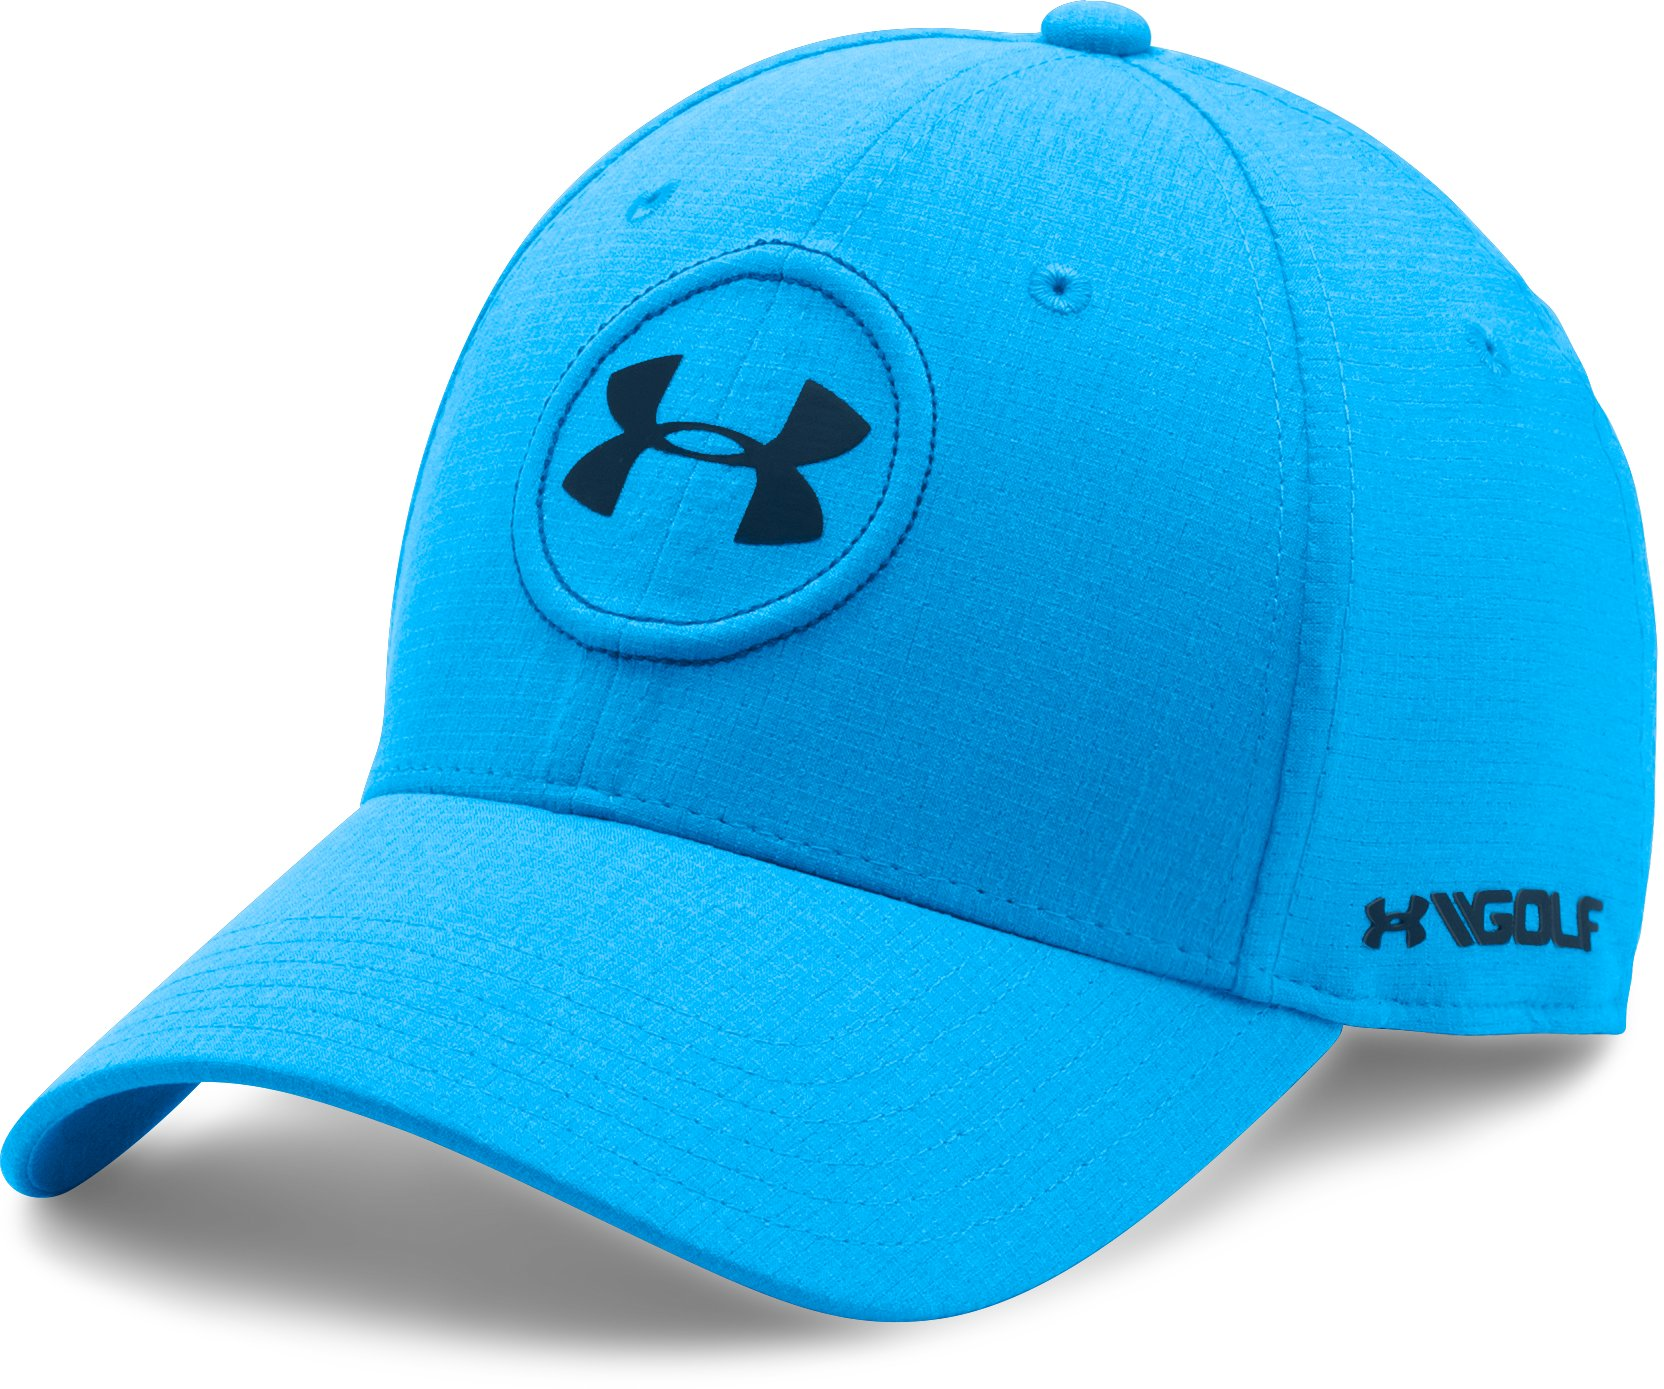 Men's Jordan Spieth UA Tour Cap, Water